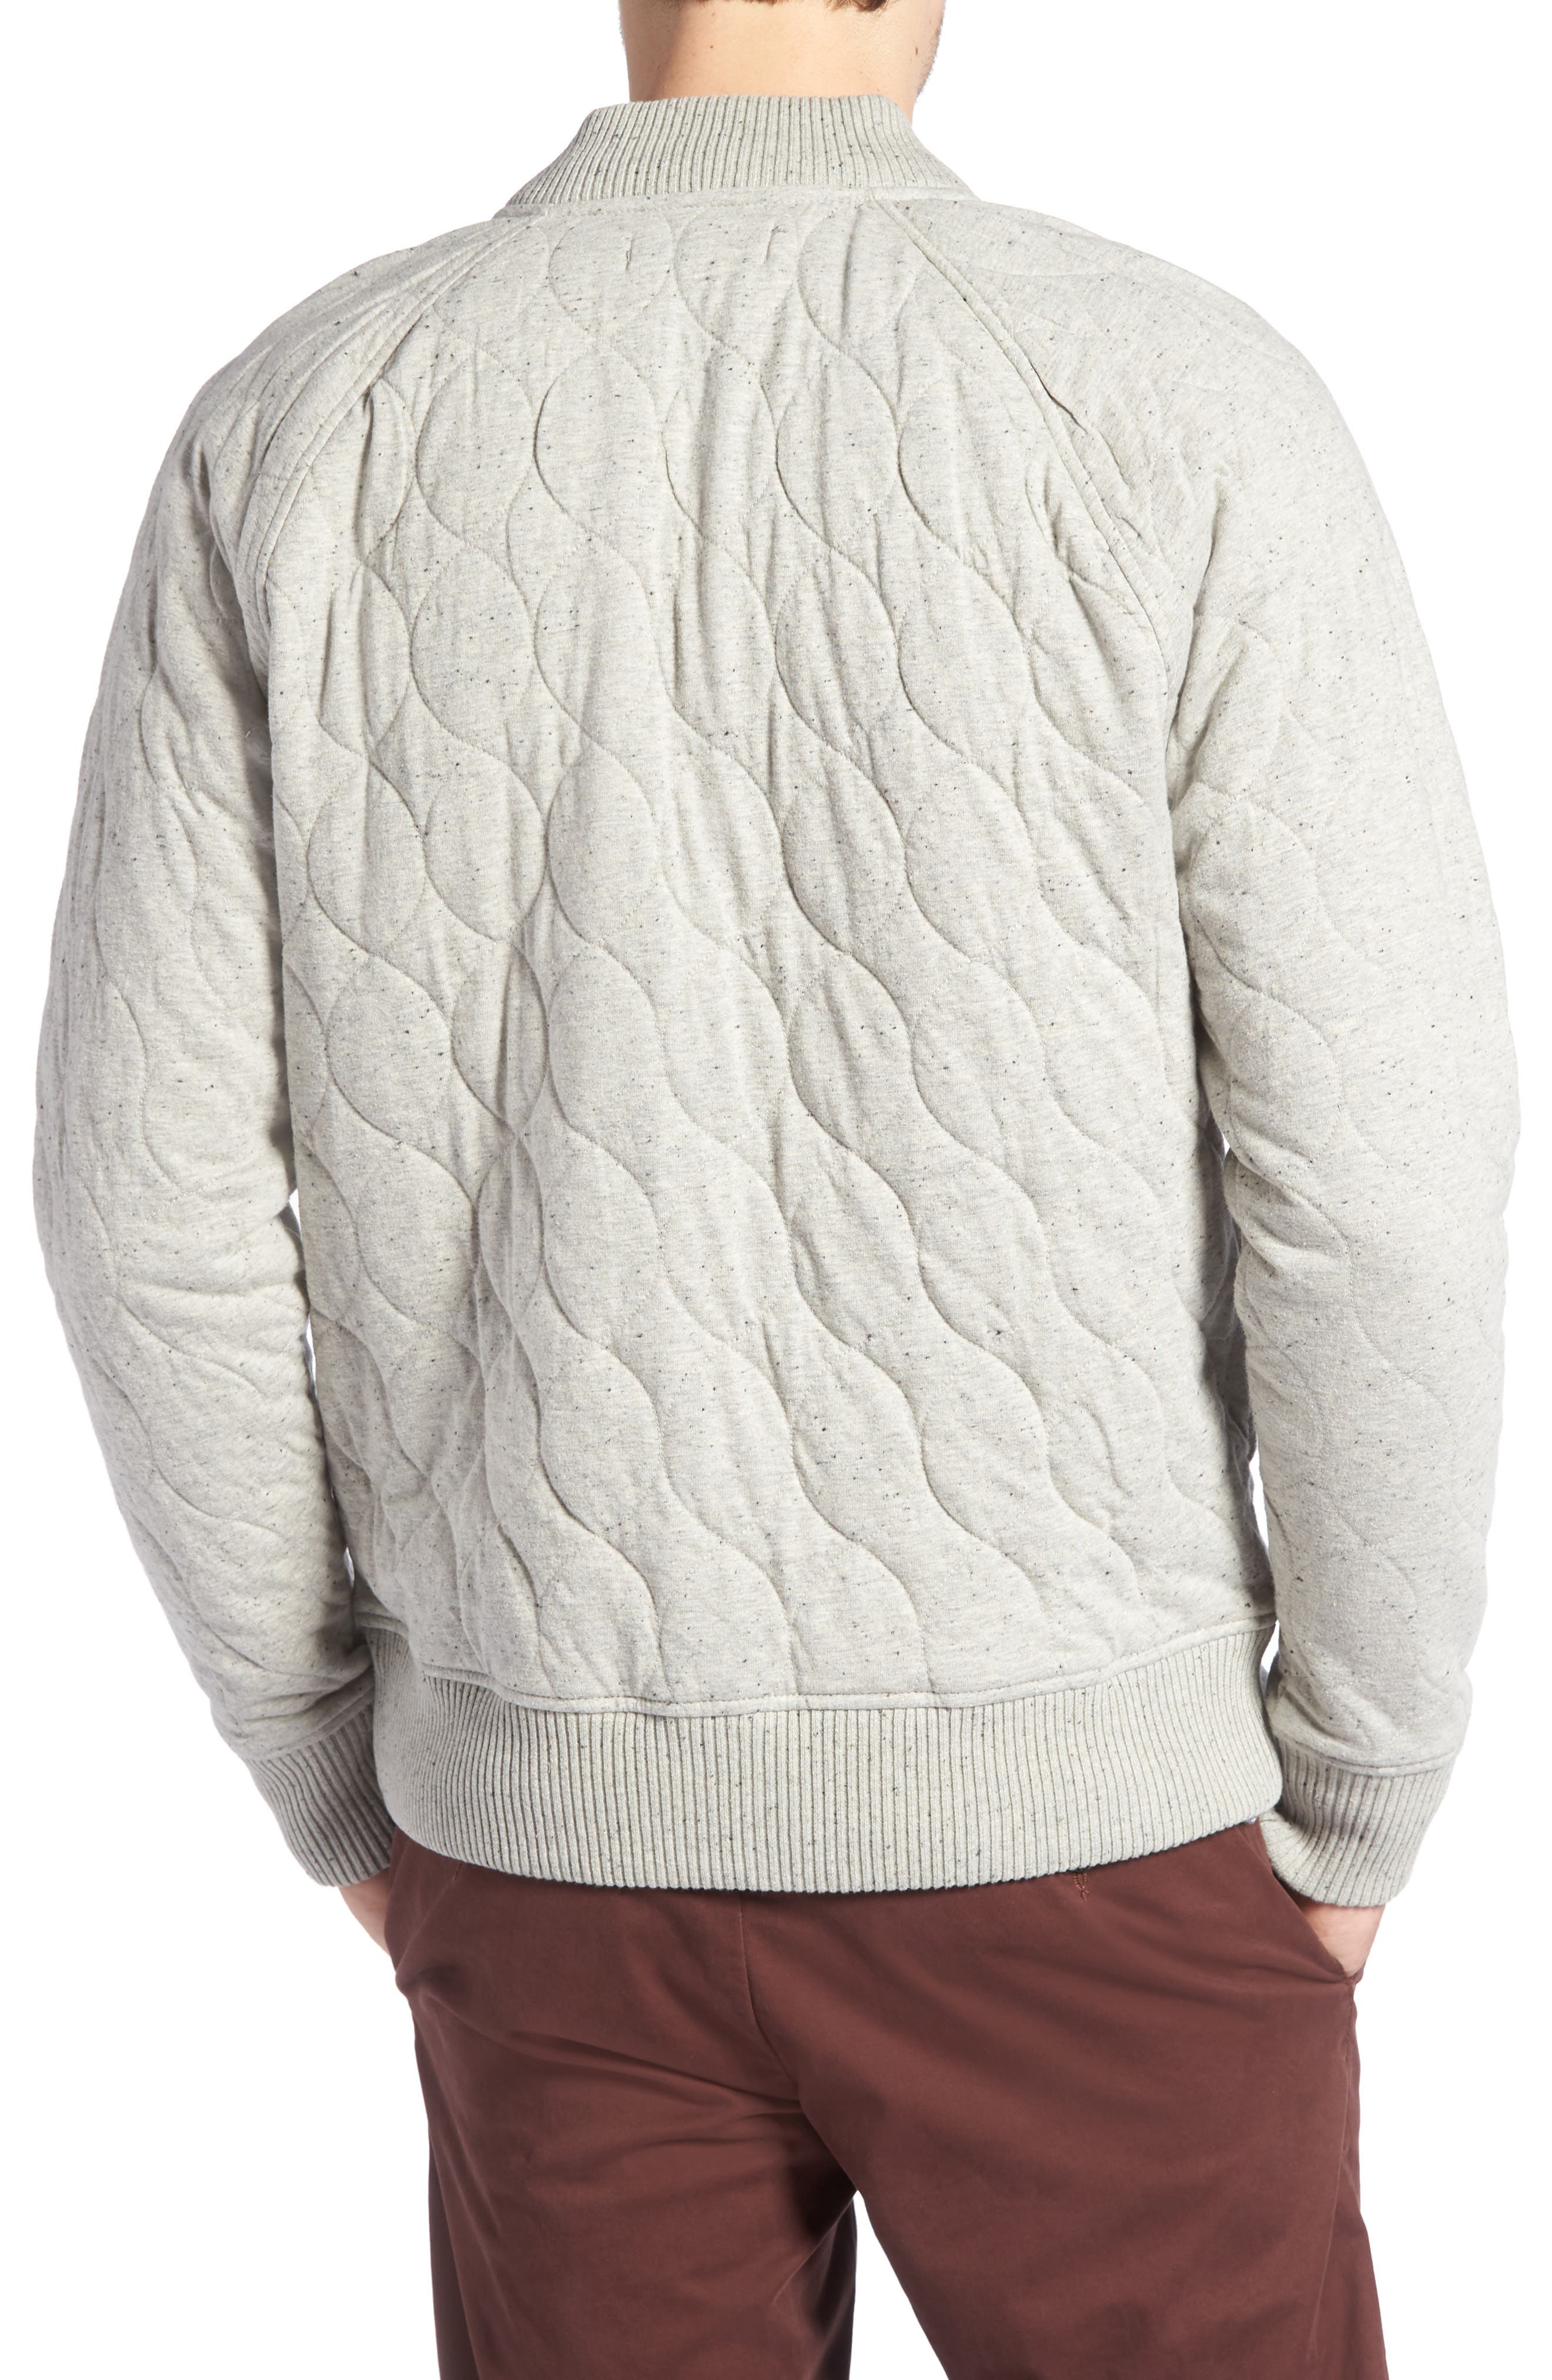 Quilted Bomber Jacket,                             Alternate thumbnail 2, color,                             GREY WEATHER NEP